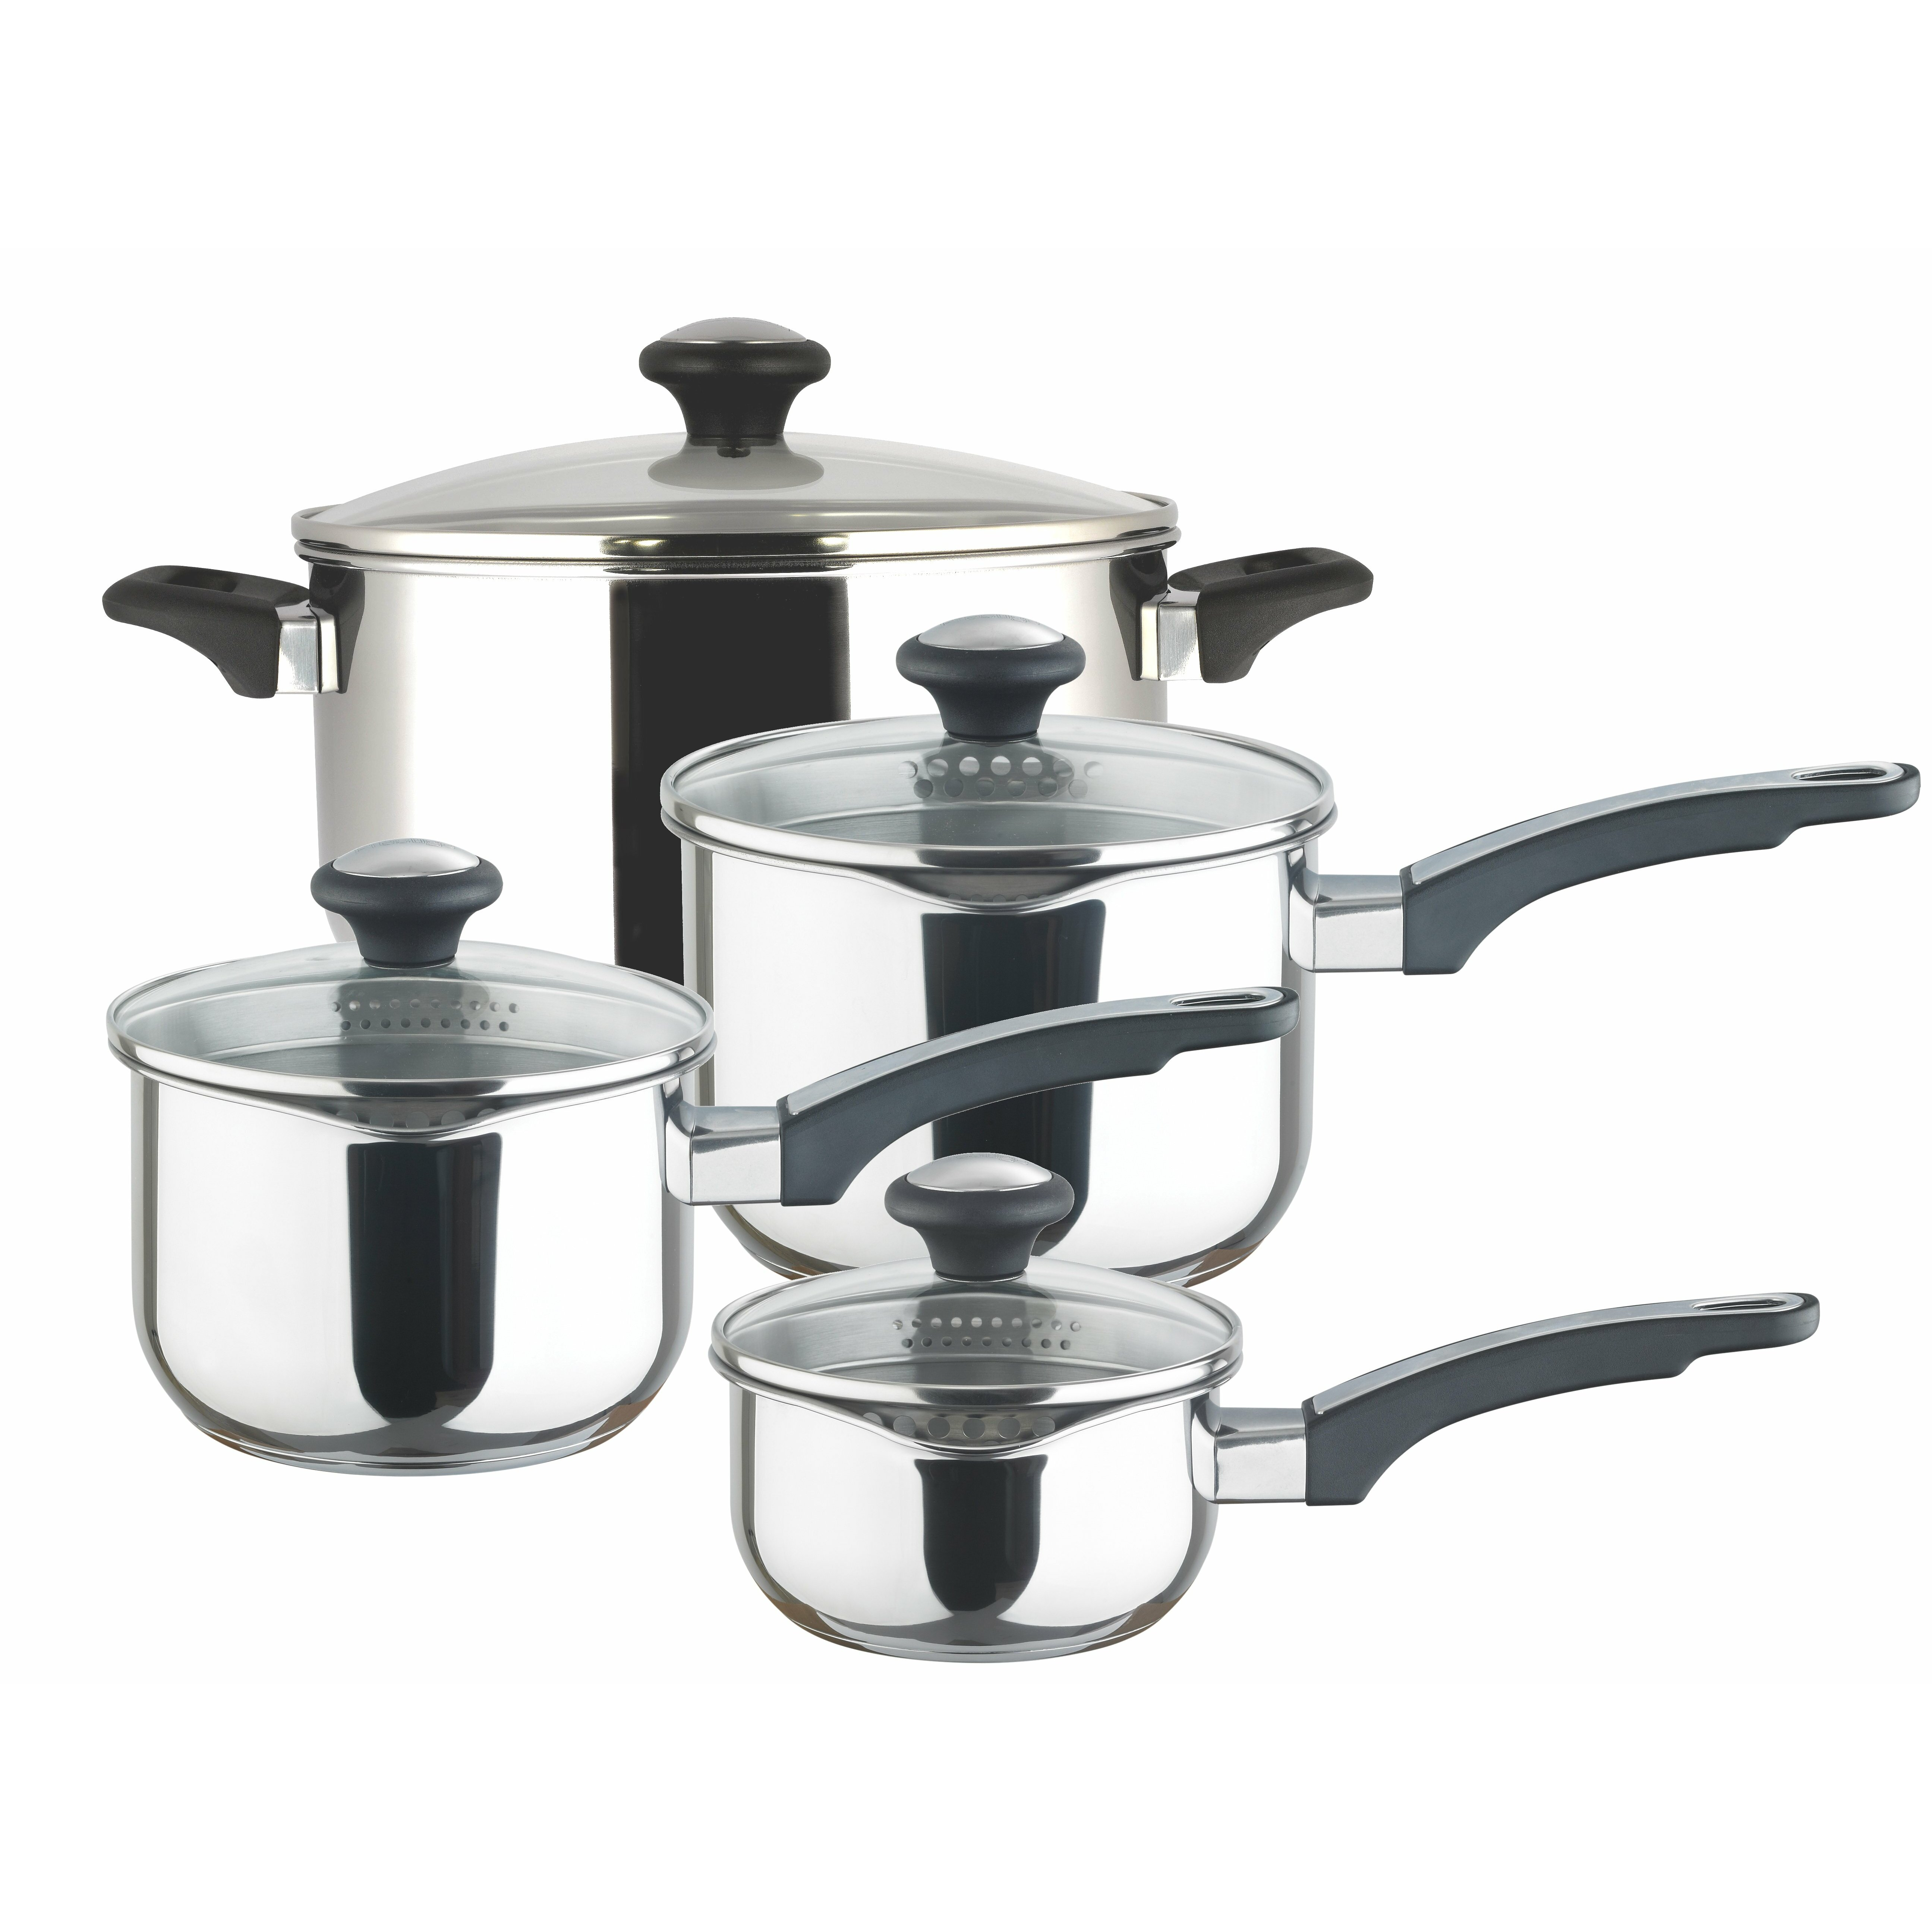 Prestige Kitchen Appliances Prestige Prestige 4 Piece Stainless Steel Cookware Set Reviews